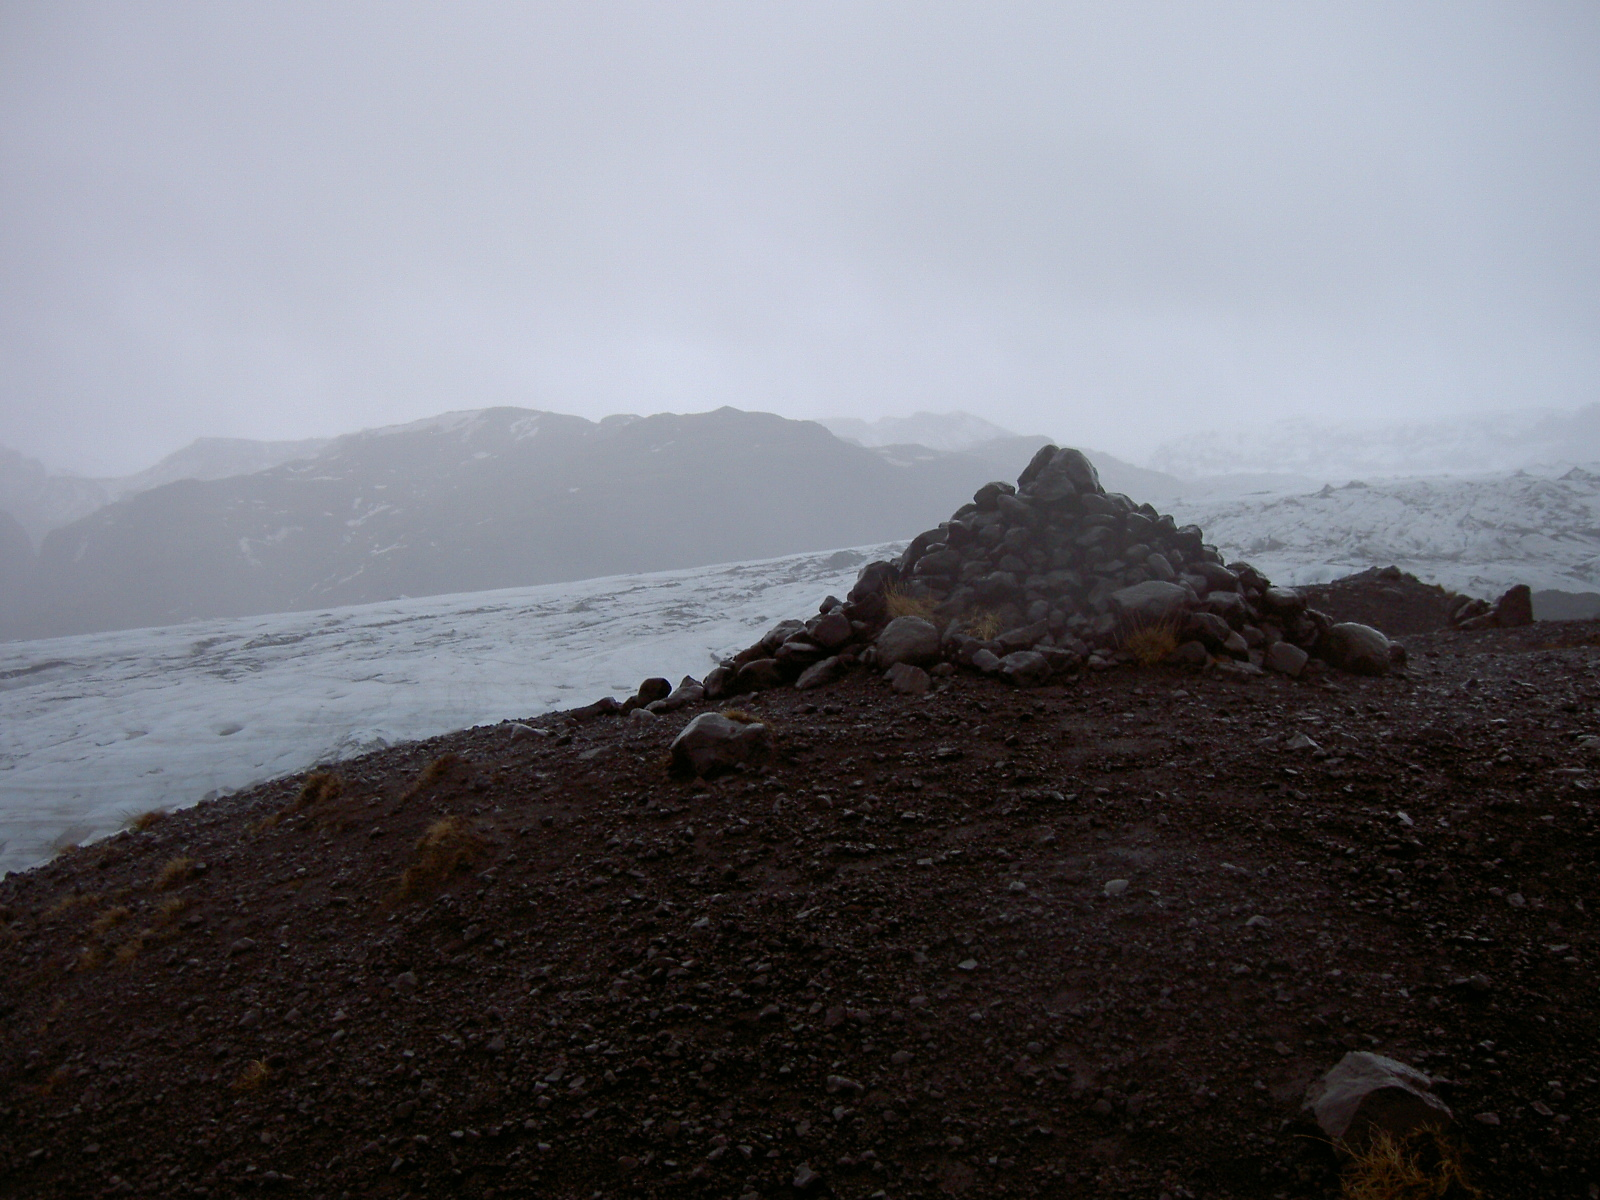 Southern finger of the Myrdals glacier (purpose of page is to display an image)